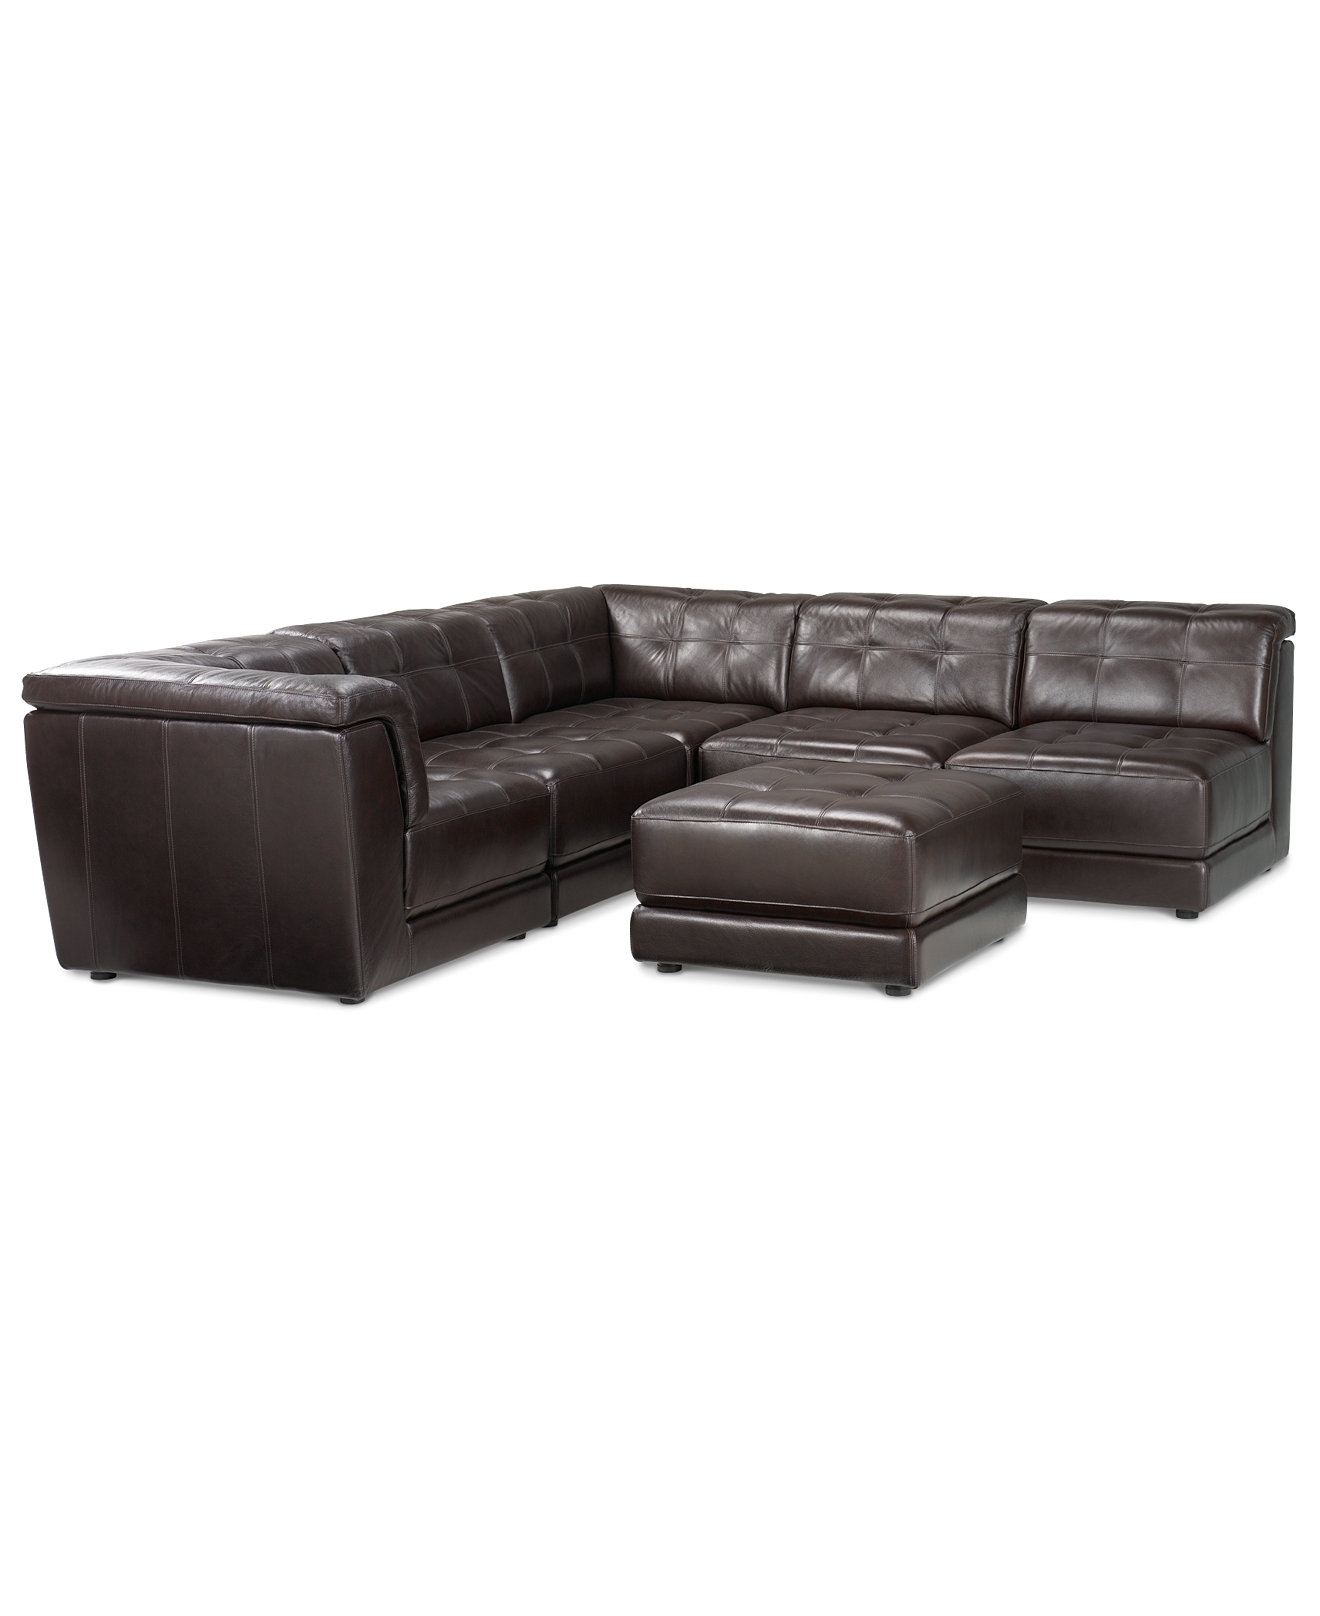 Stacey Leather 6 Piece Modular Sectional Sofa (3 Armless Chairs, 2 Regarding 2018 Macys Leather Sectional Sofas (View 3 of 15)